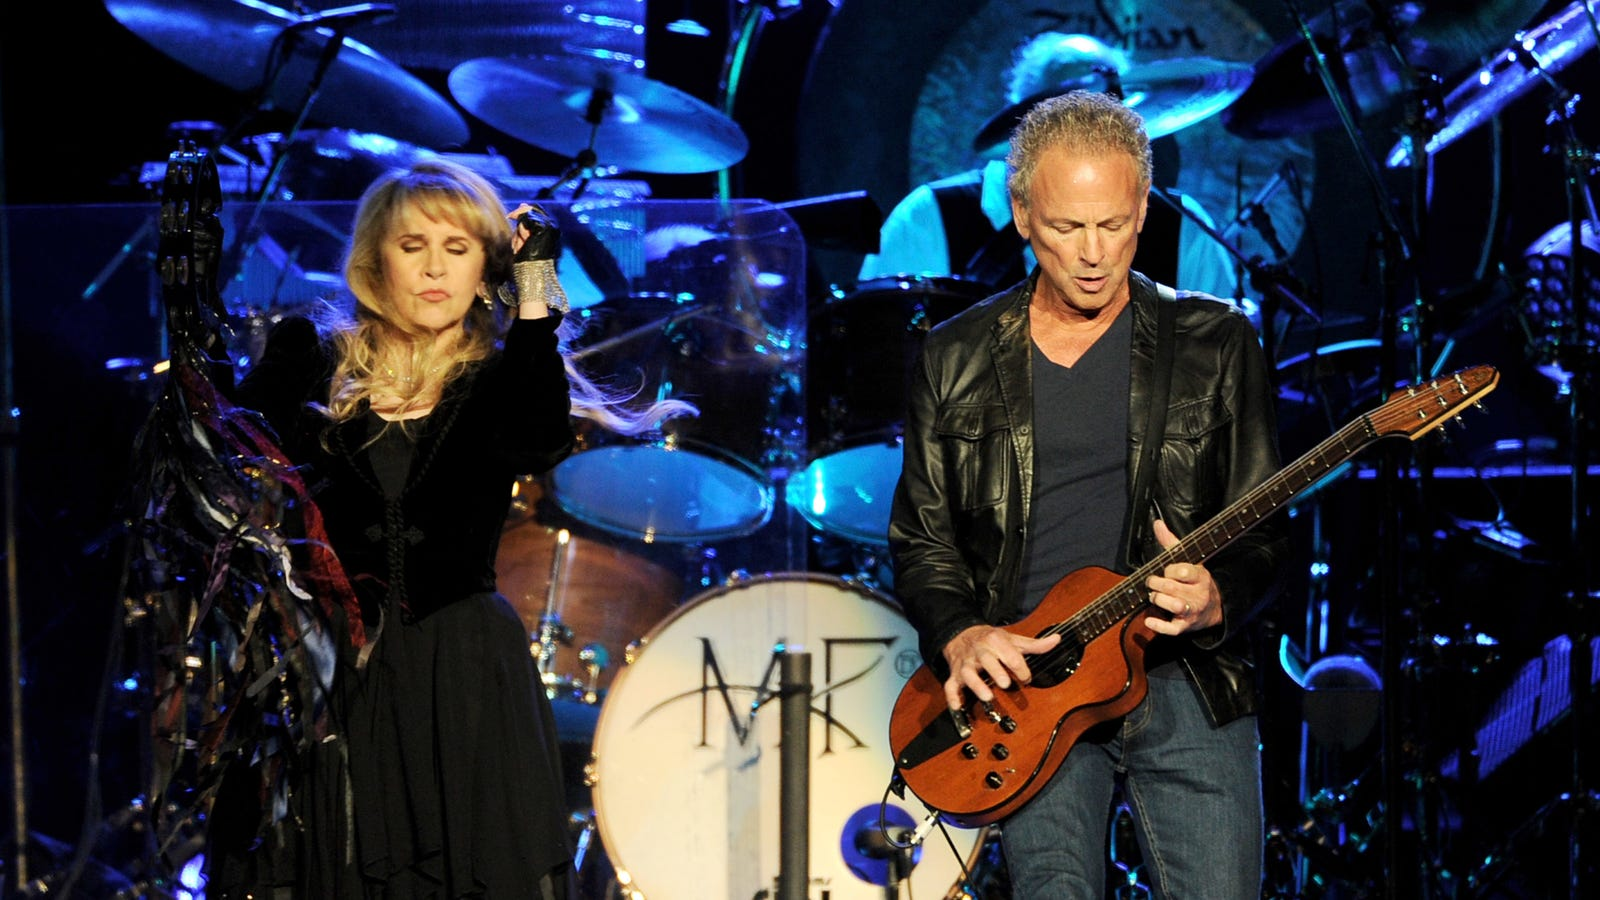 The hottest celebrity beef of 2018 is between Lindsey Buckingham and Stevie Nicks